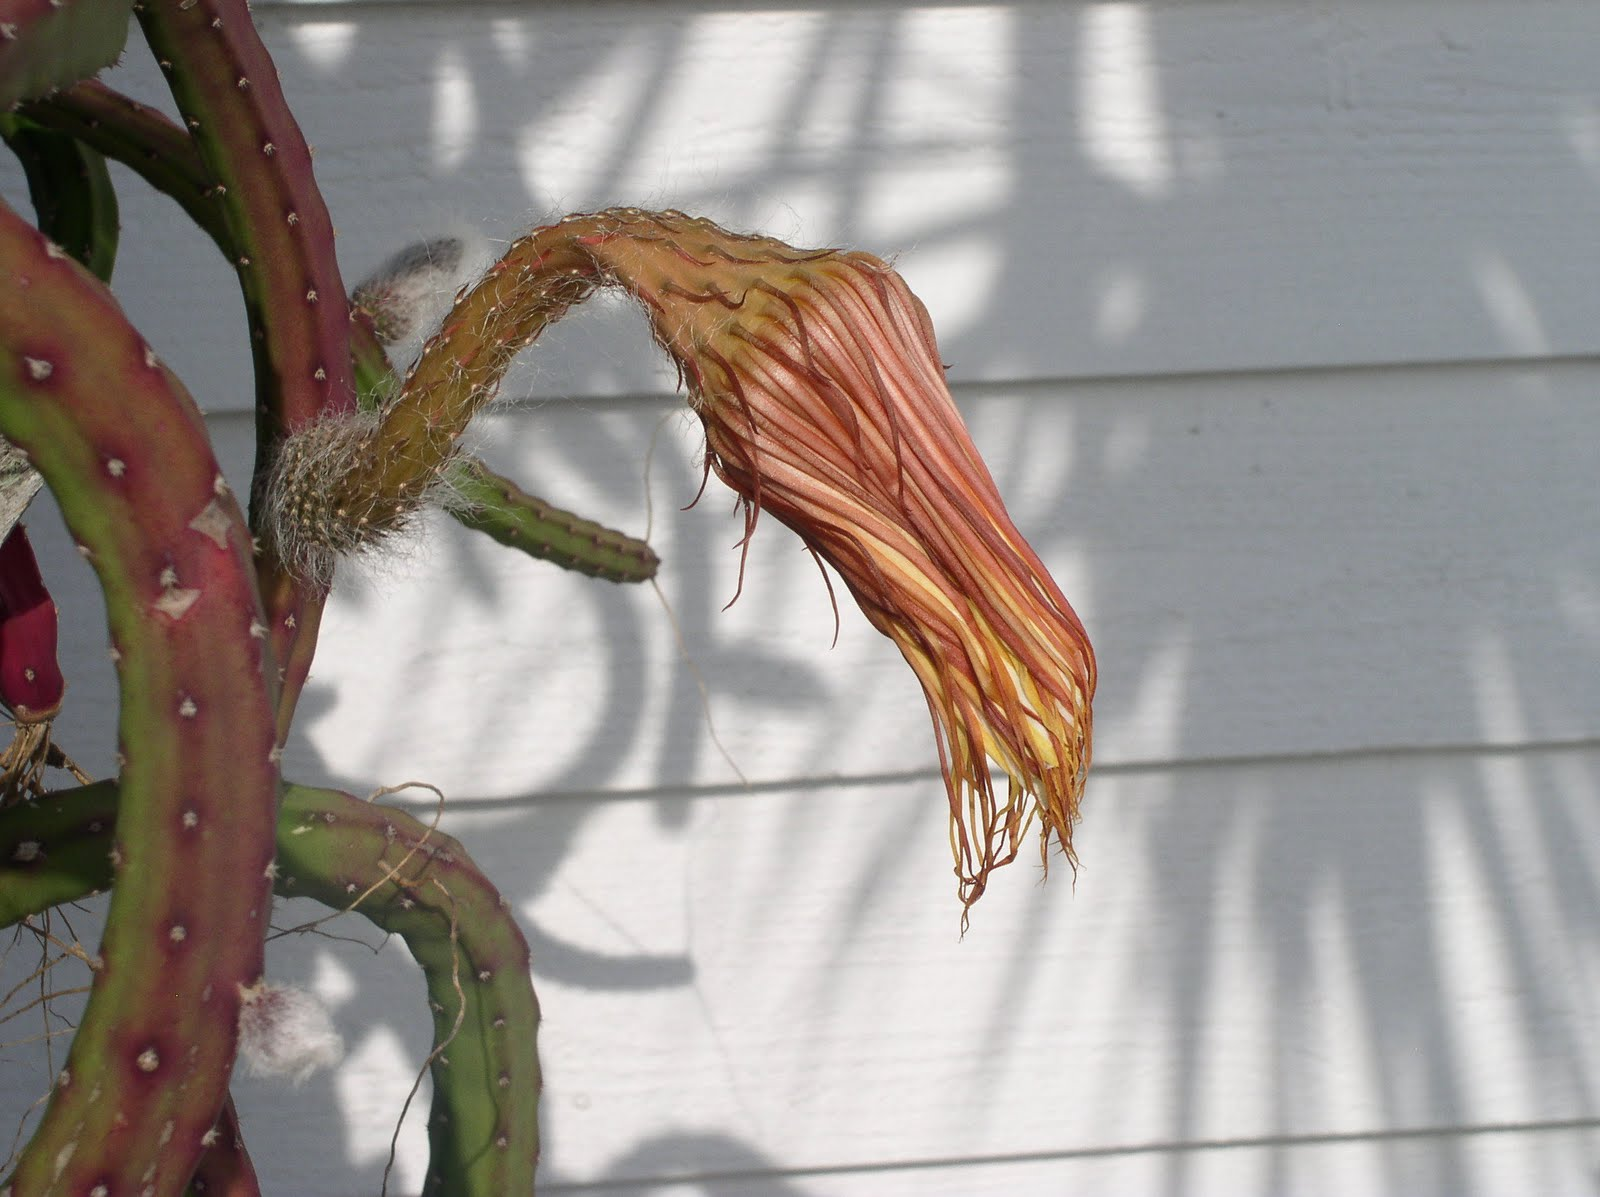 Florida Flowers and Gardens: Night Blooming Cereus